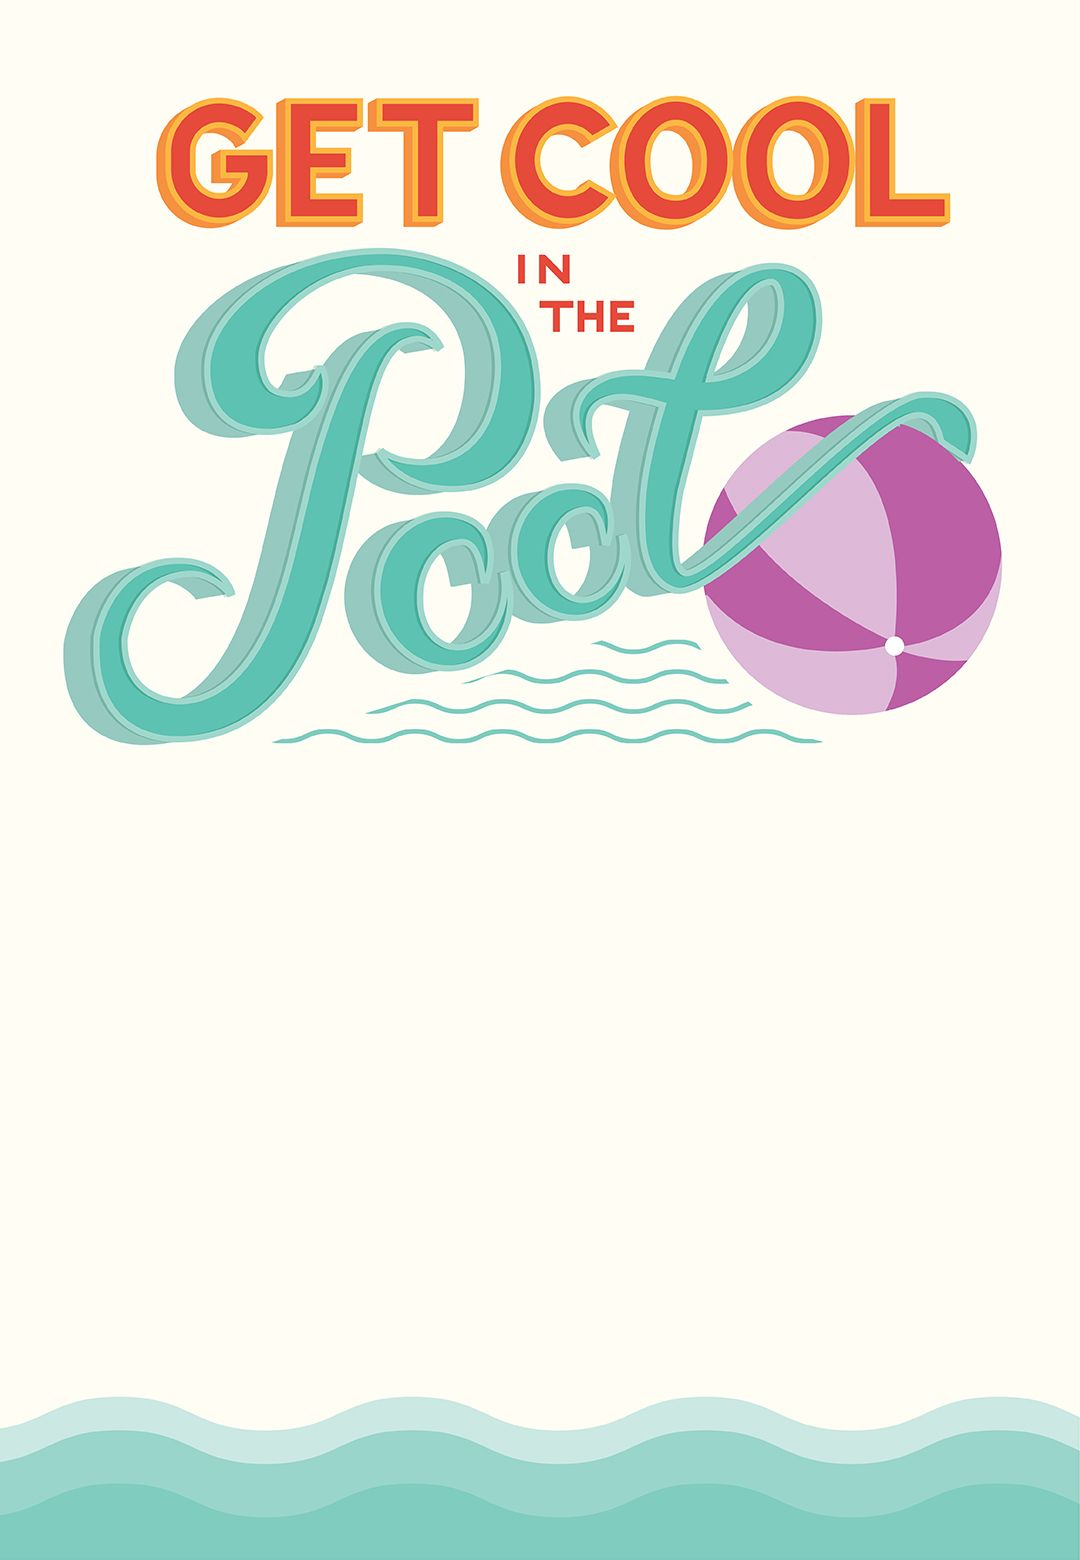 Pool Party - Free Printable Party Invitation Template   Greetings - Free Printable Pool Party Birthday Invitations